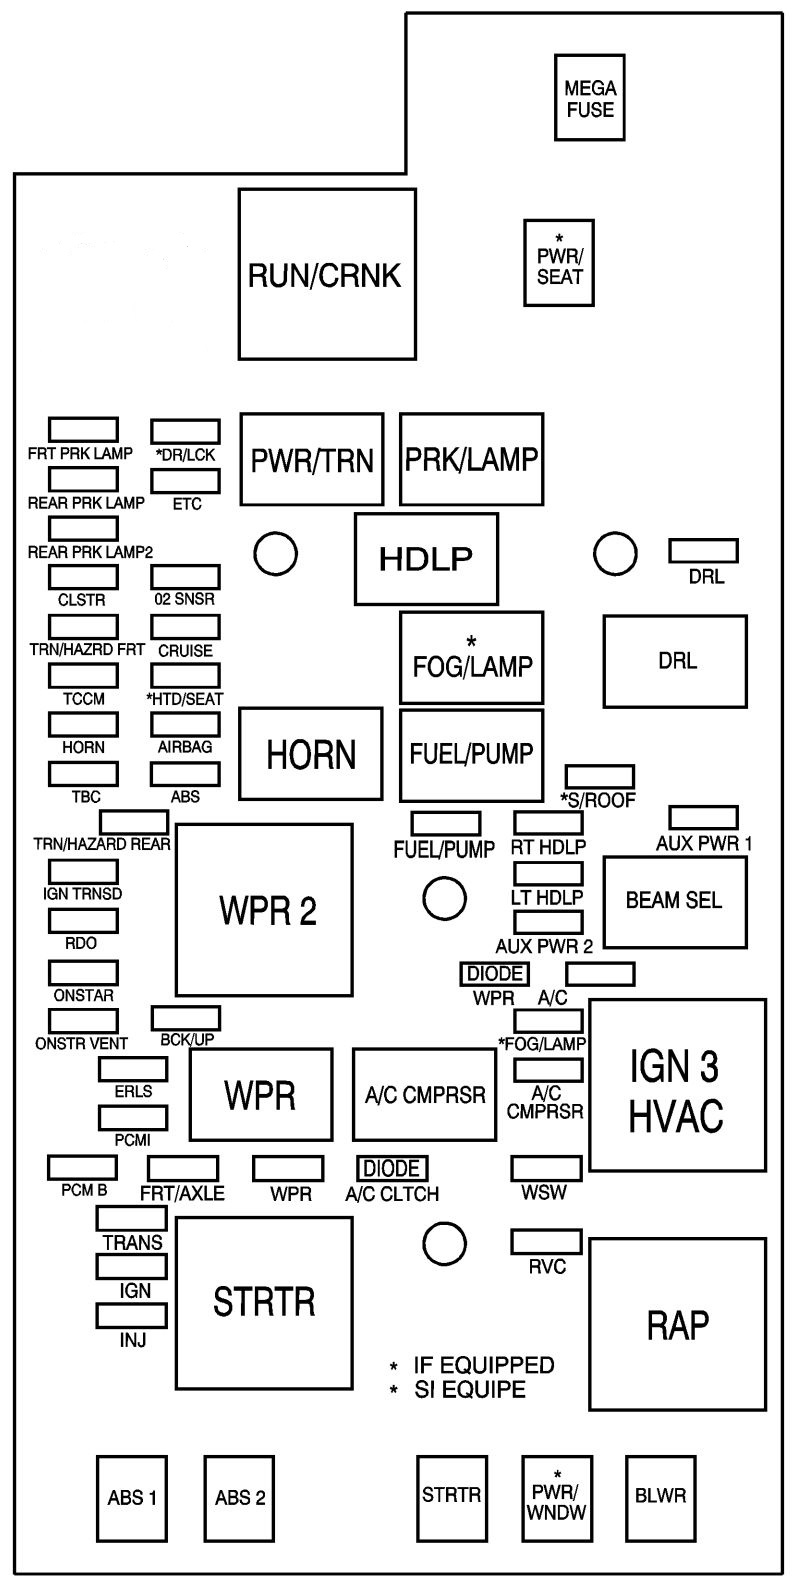 2012 Prius Fuse Diagram Wiring Diagrams Source For 02 Toyota Tundra Database